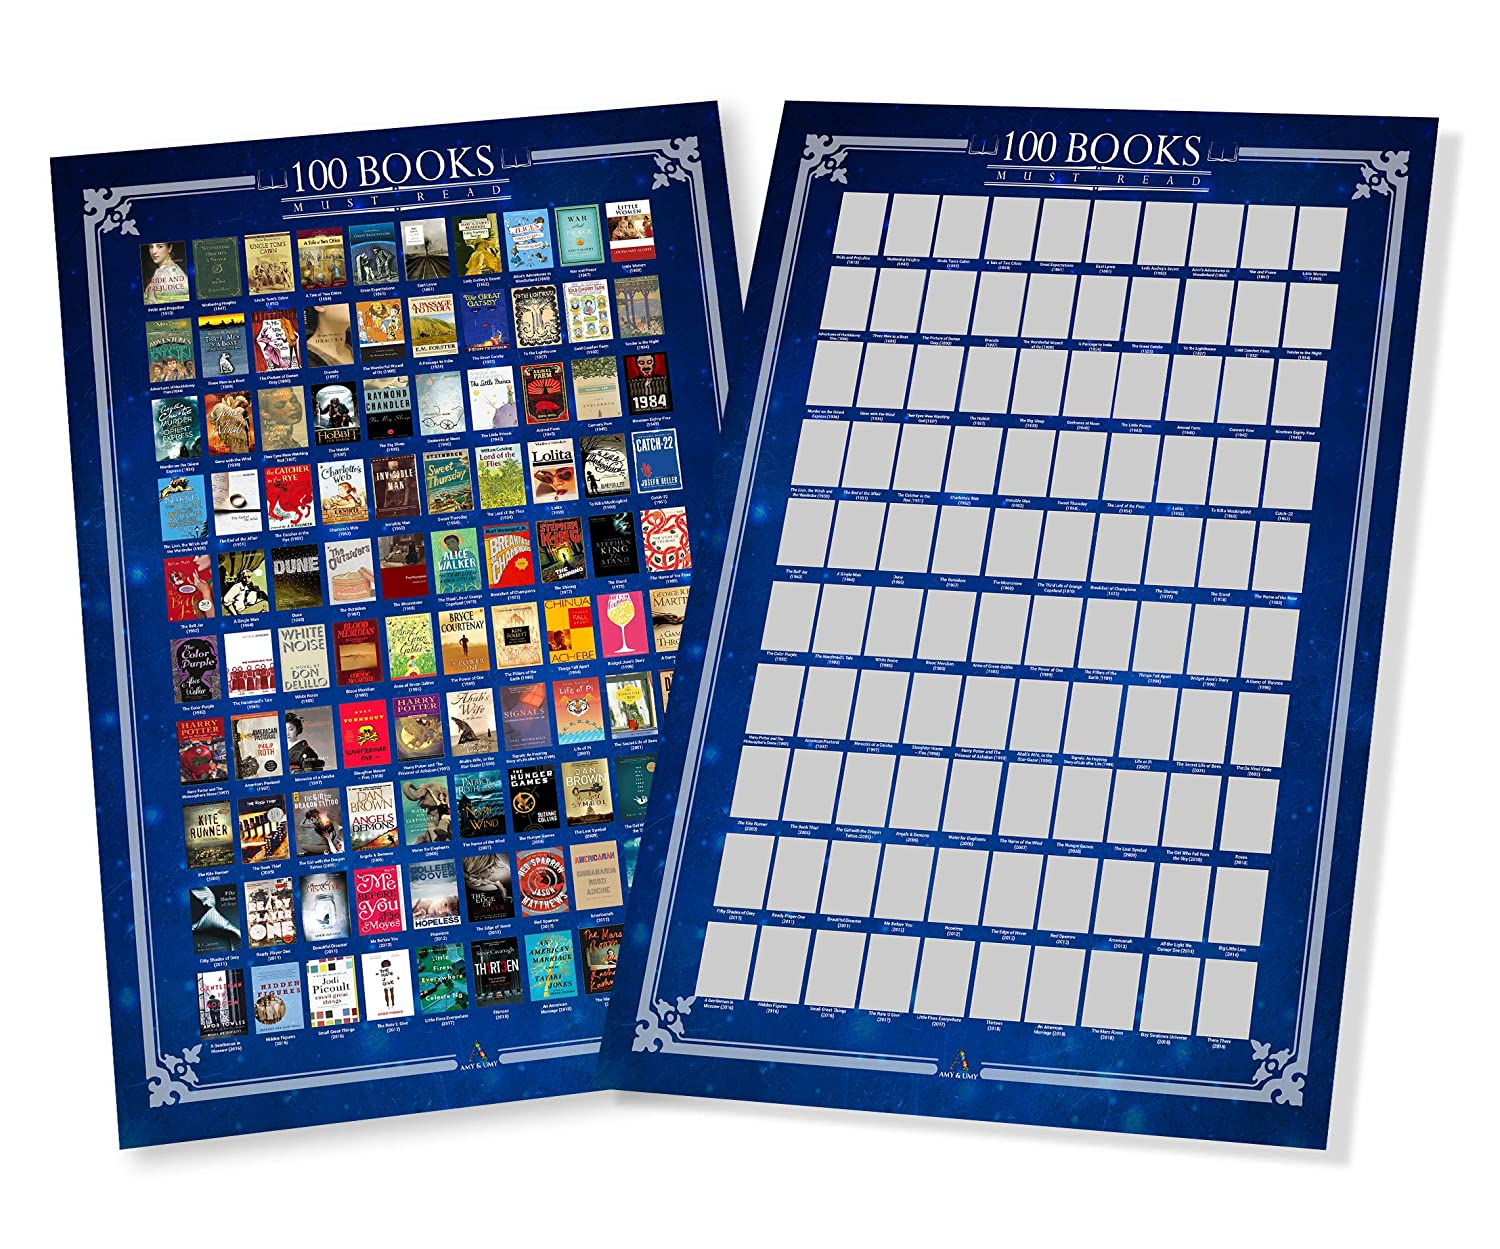 All-Time Favorite Book Poster Amy and Umy Scratch Off Books Poster 100 Must Read of All Time Bucket List Large 16.5 x 23.4 inches Premium Quality /& Print Wall Decor /& Entertainment Piece